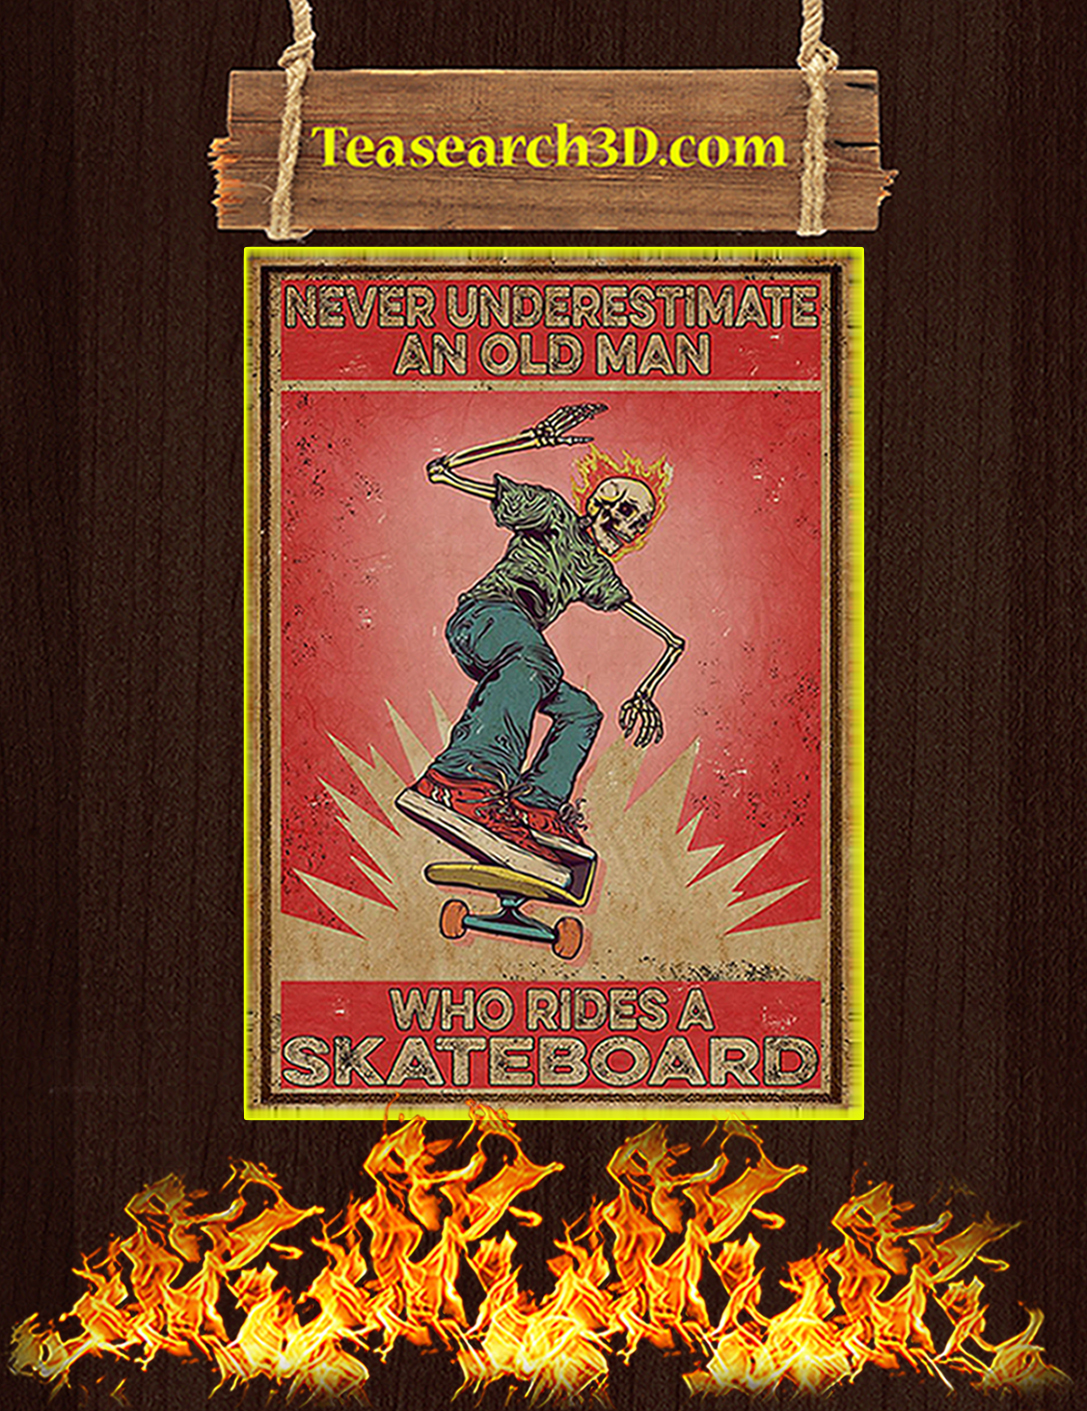 Never underestimate an old man who rides a skateboard poster A2